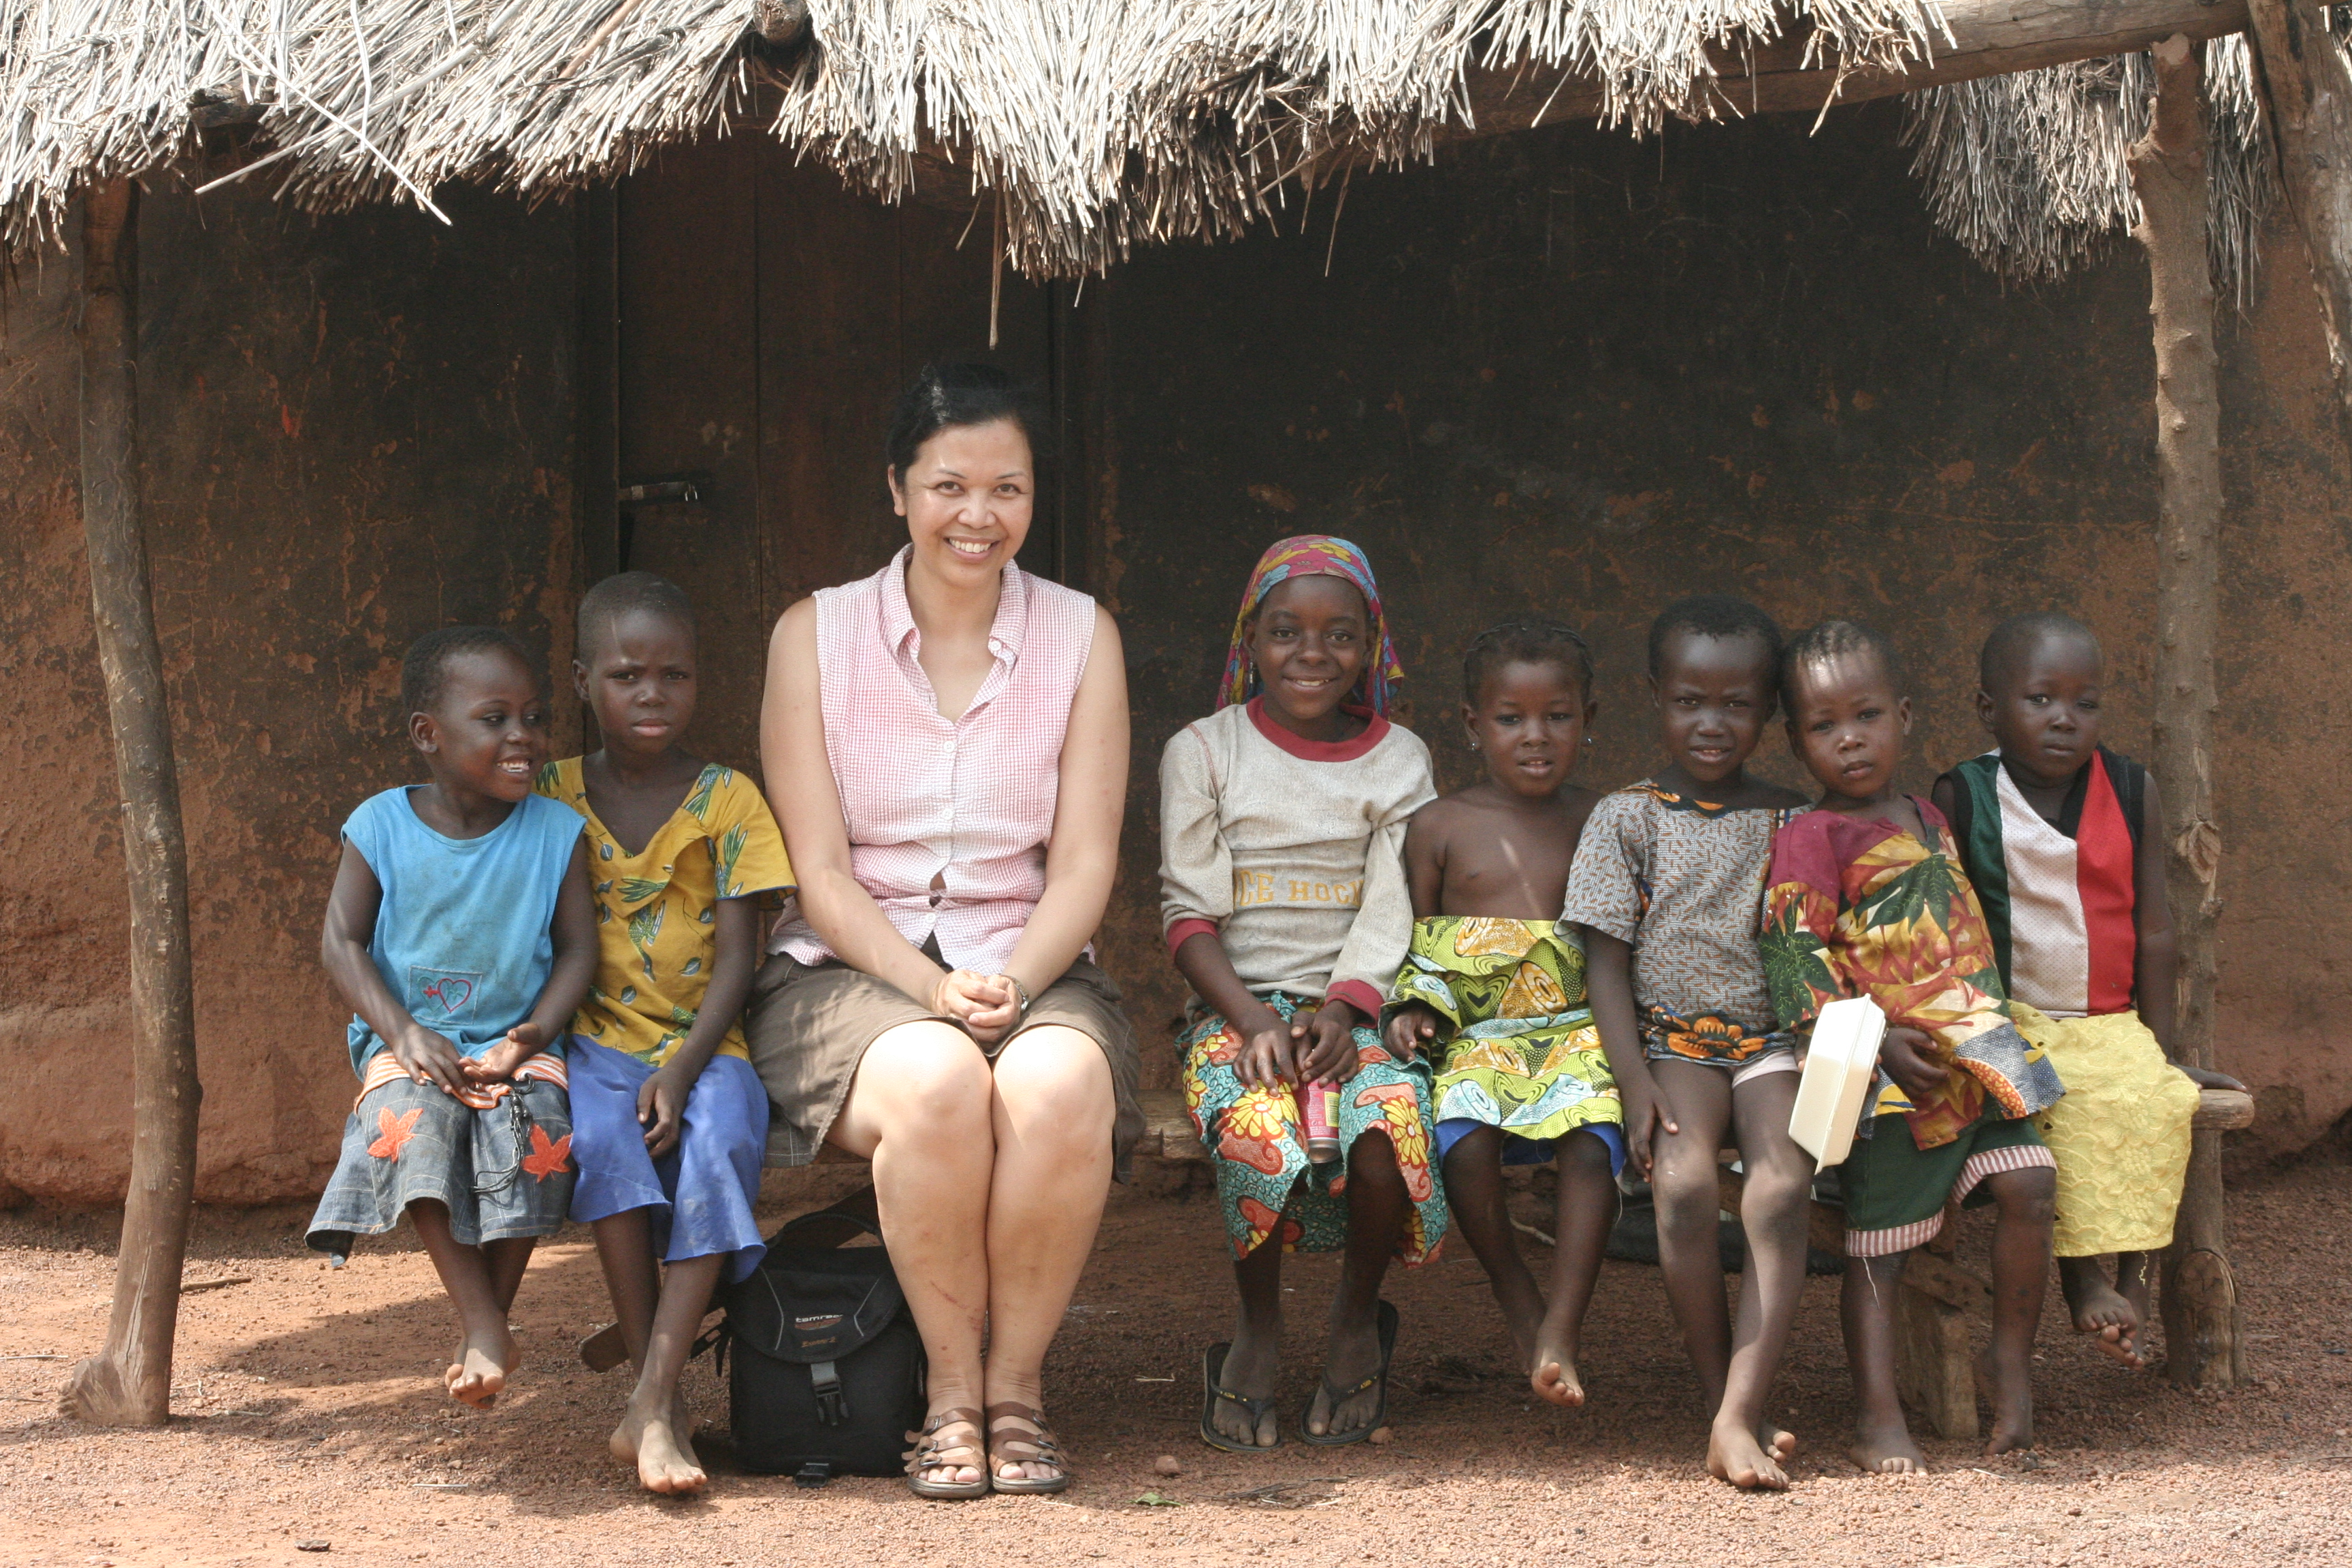 Maryann in a rural village in Northern Ghana visiting a for-profit enterprise for women.